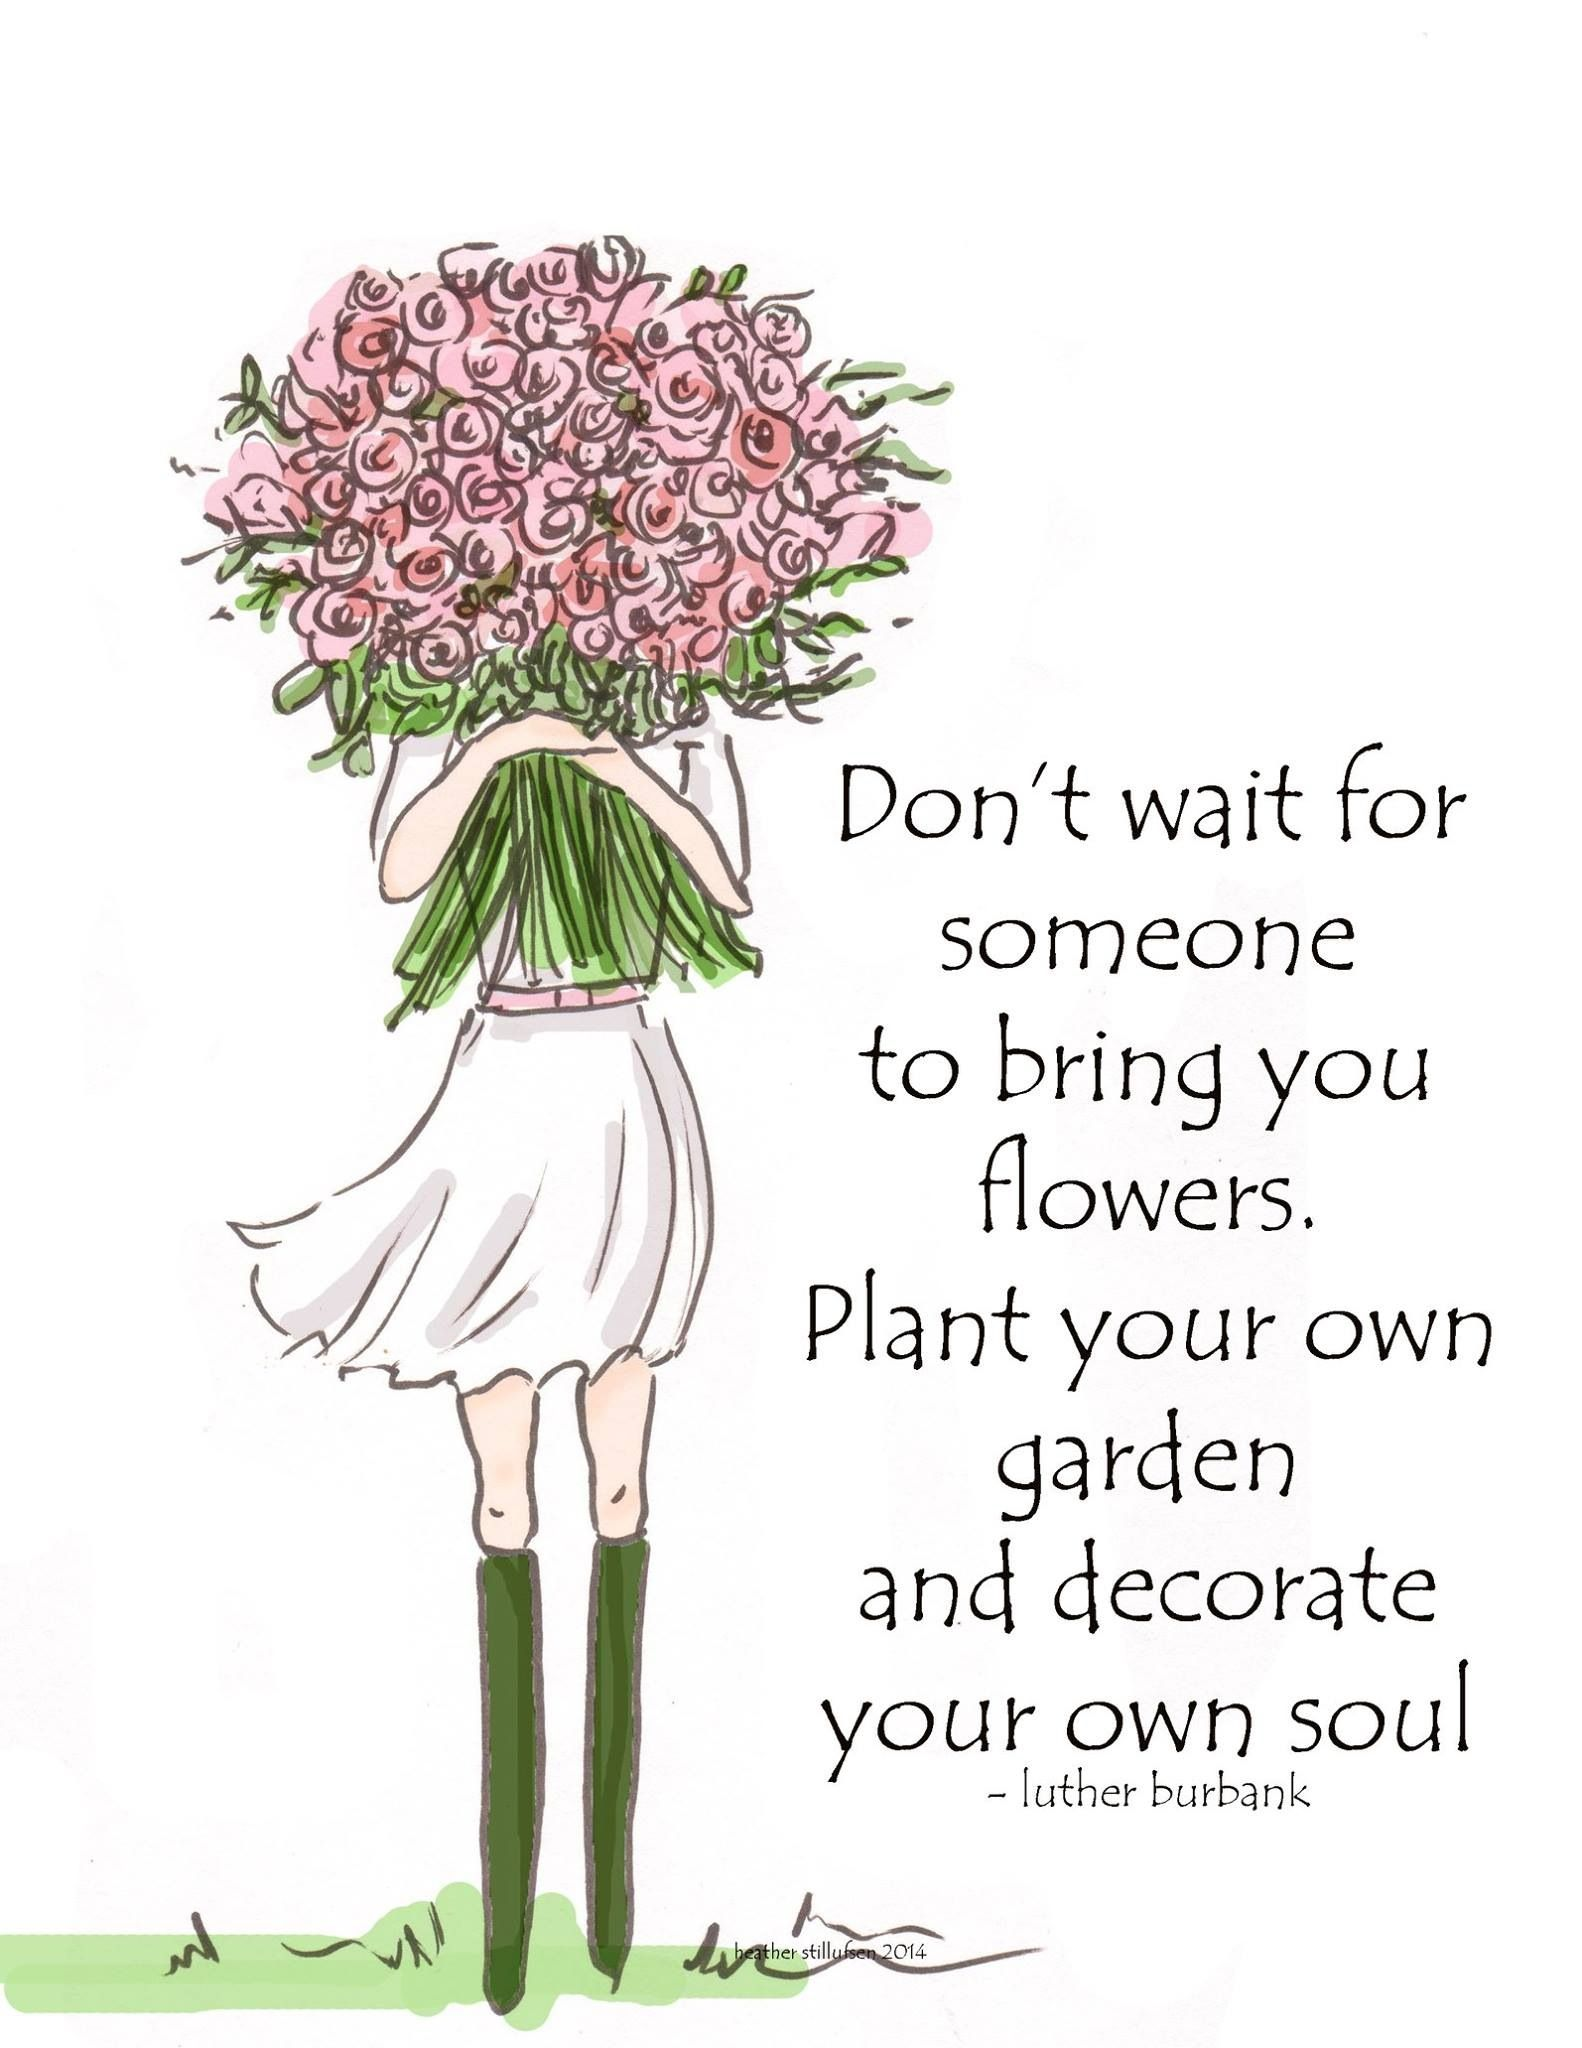 Don't wait for someone to bring you flowers... ready to